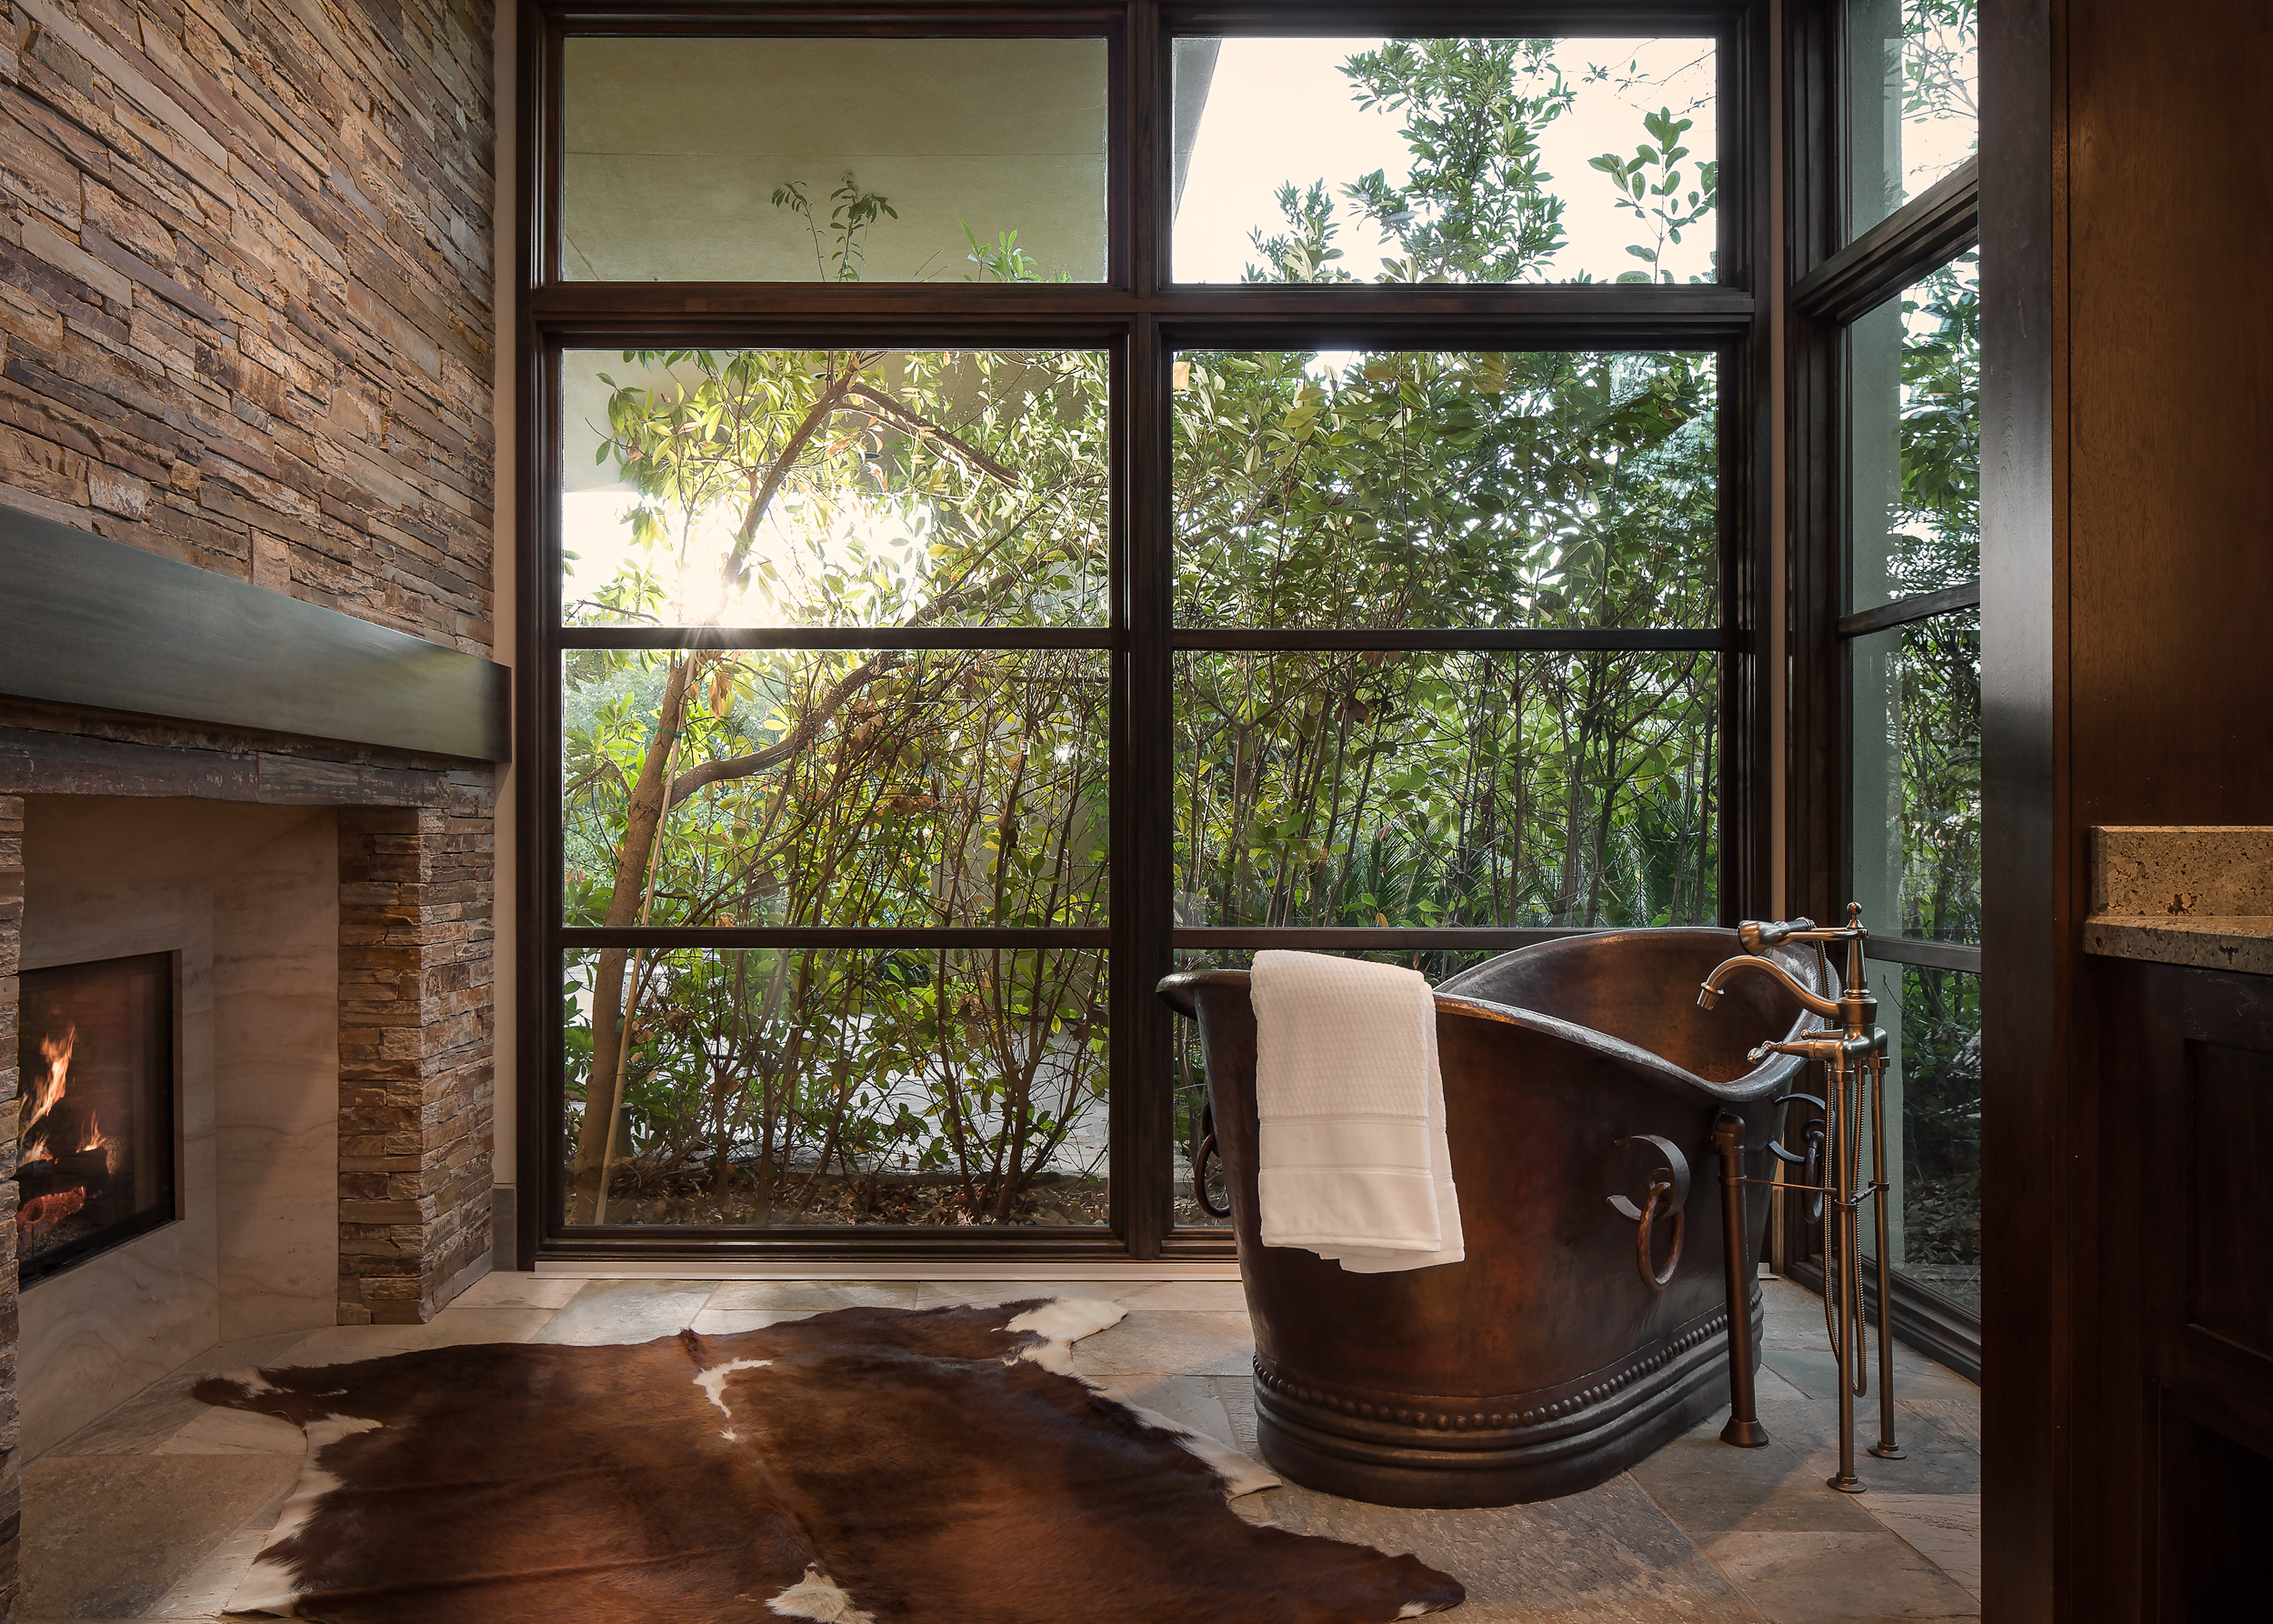 Bathtub and Fireplace